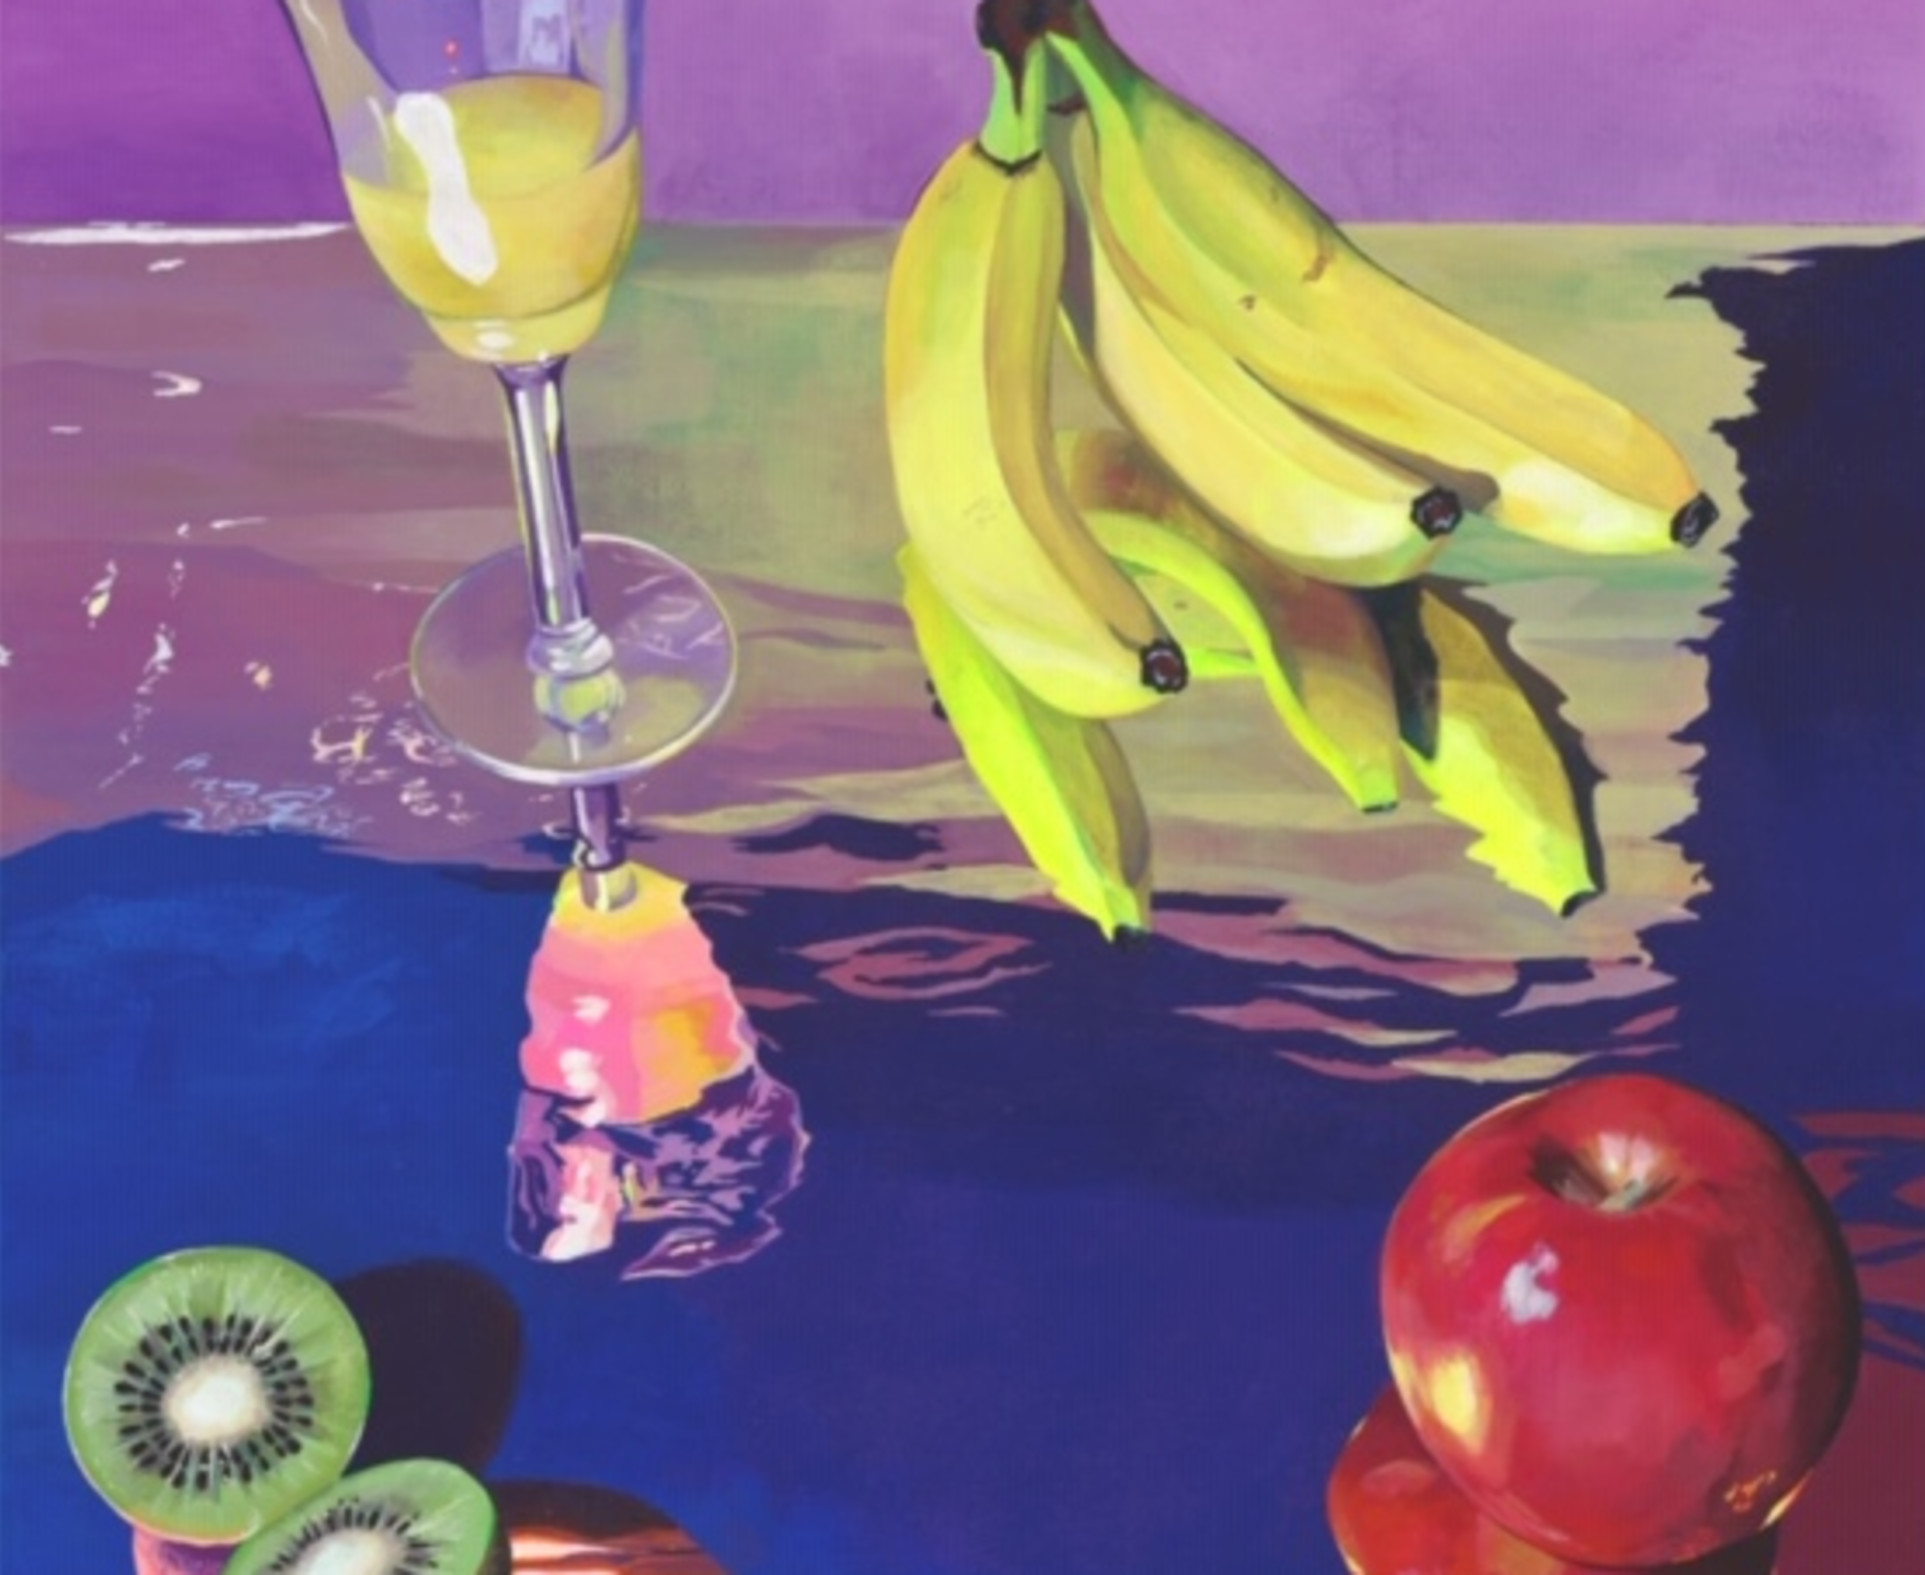 Amanda Dunham, Brunch on a Mirror, 2019